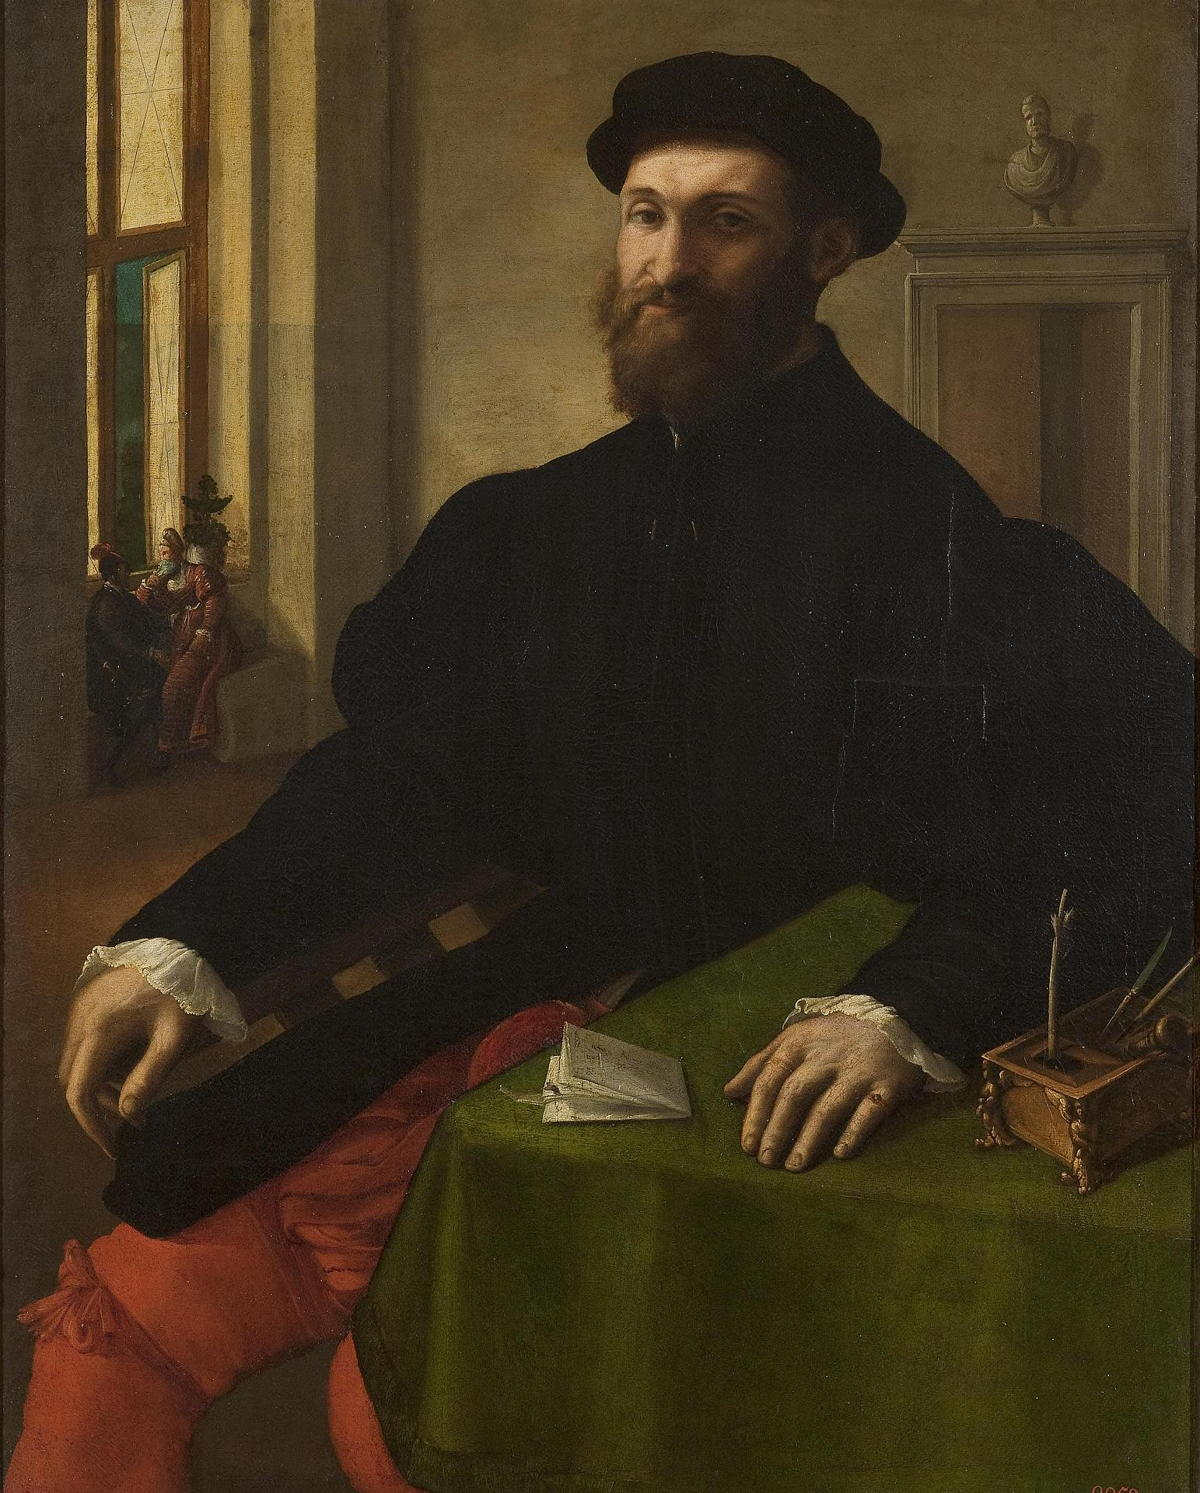 Portrait of a Man by Giulio Campi